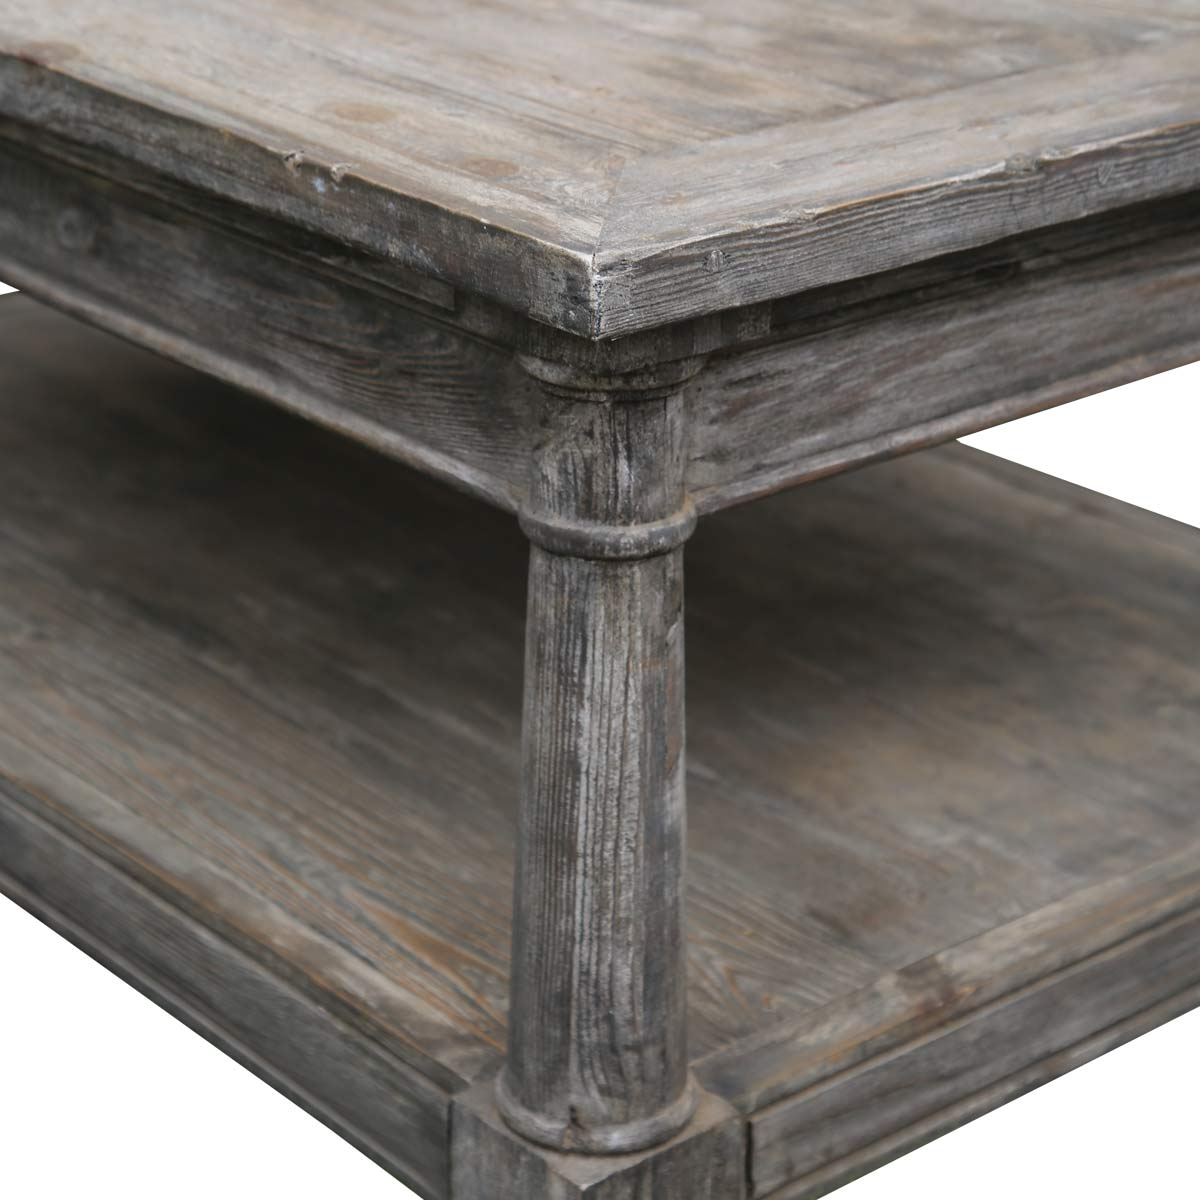 Shabby Chic Corner Coffee Table: Shabby Chic Rectangle Baluster Coffee Table Made Of Teak Wood